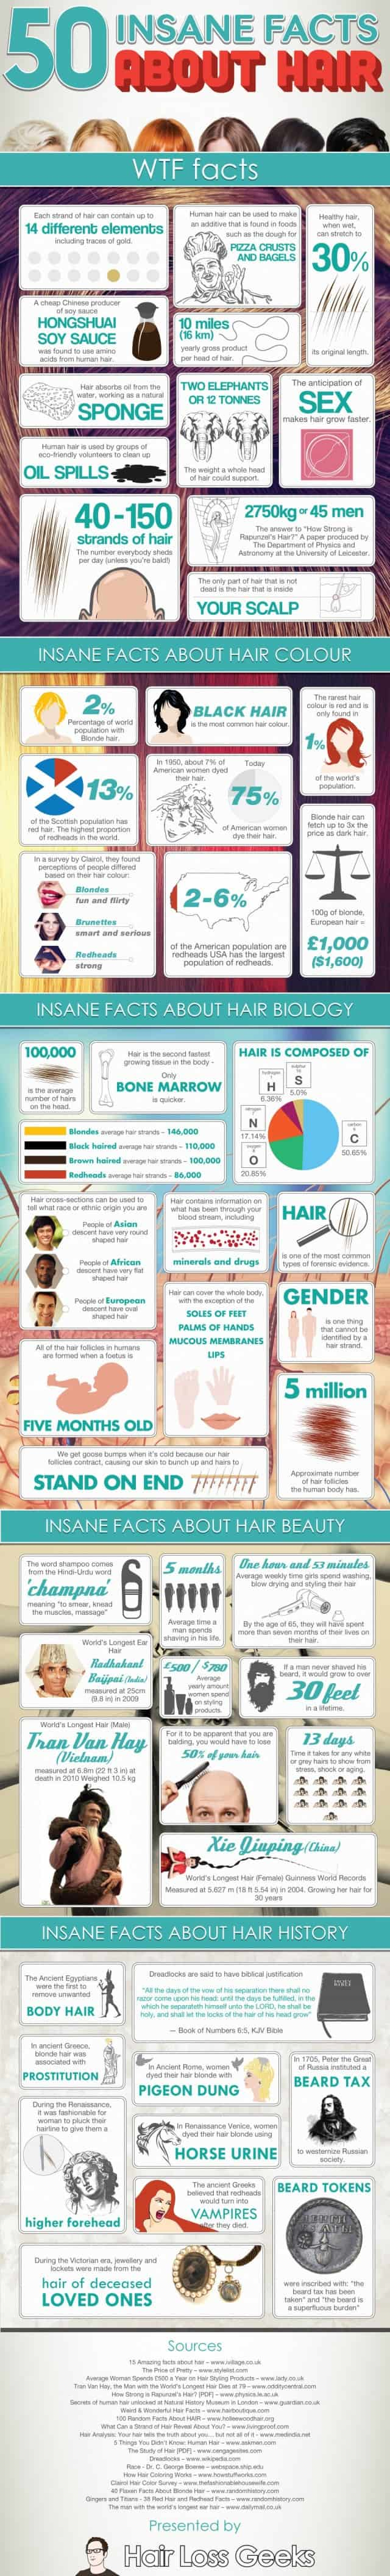 50 Insane Facts About Hair